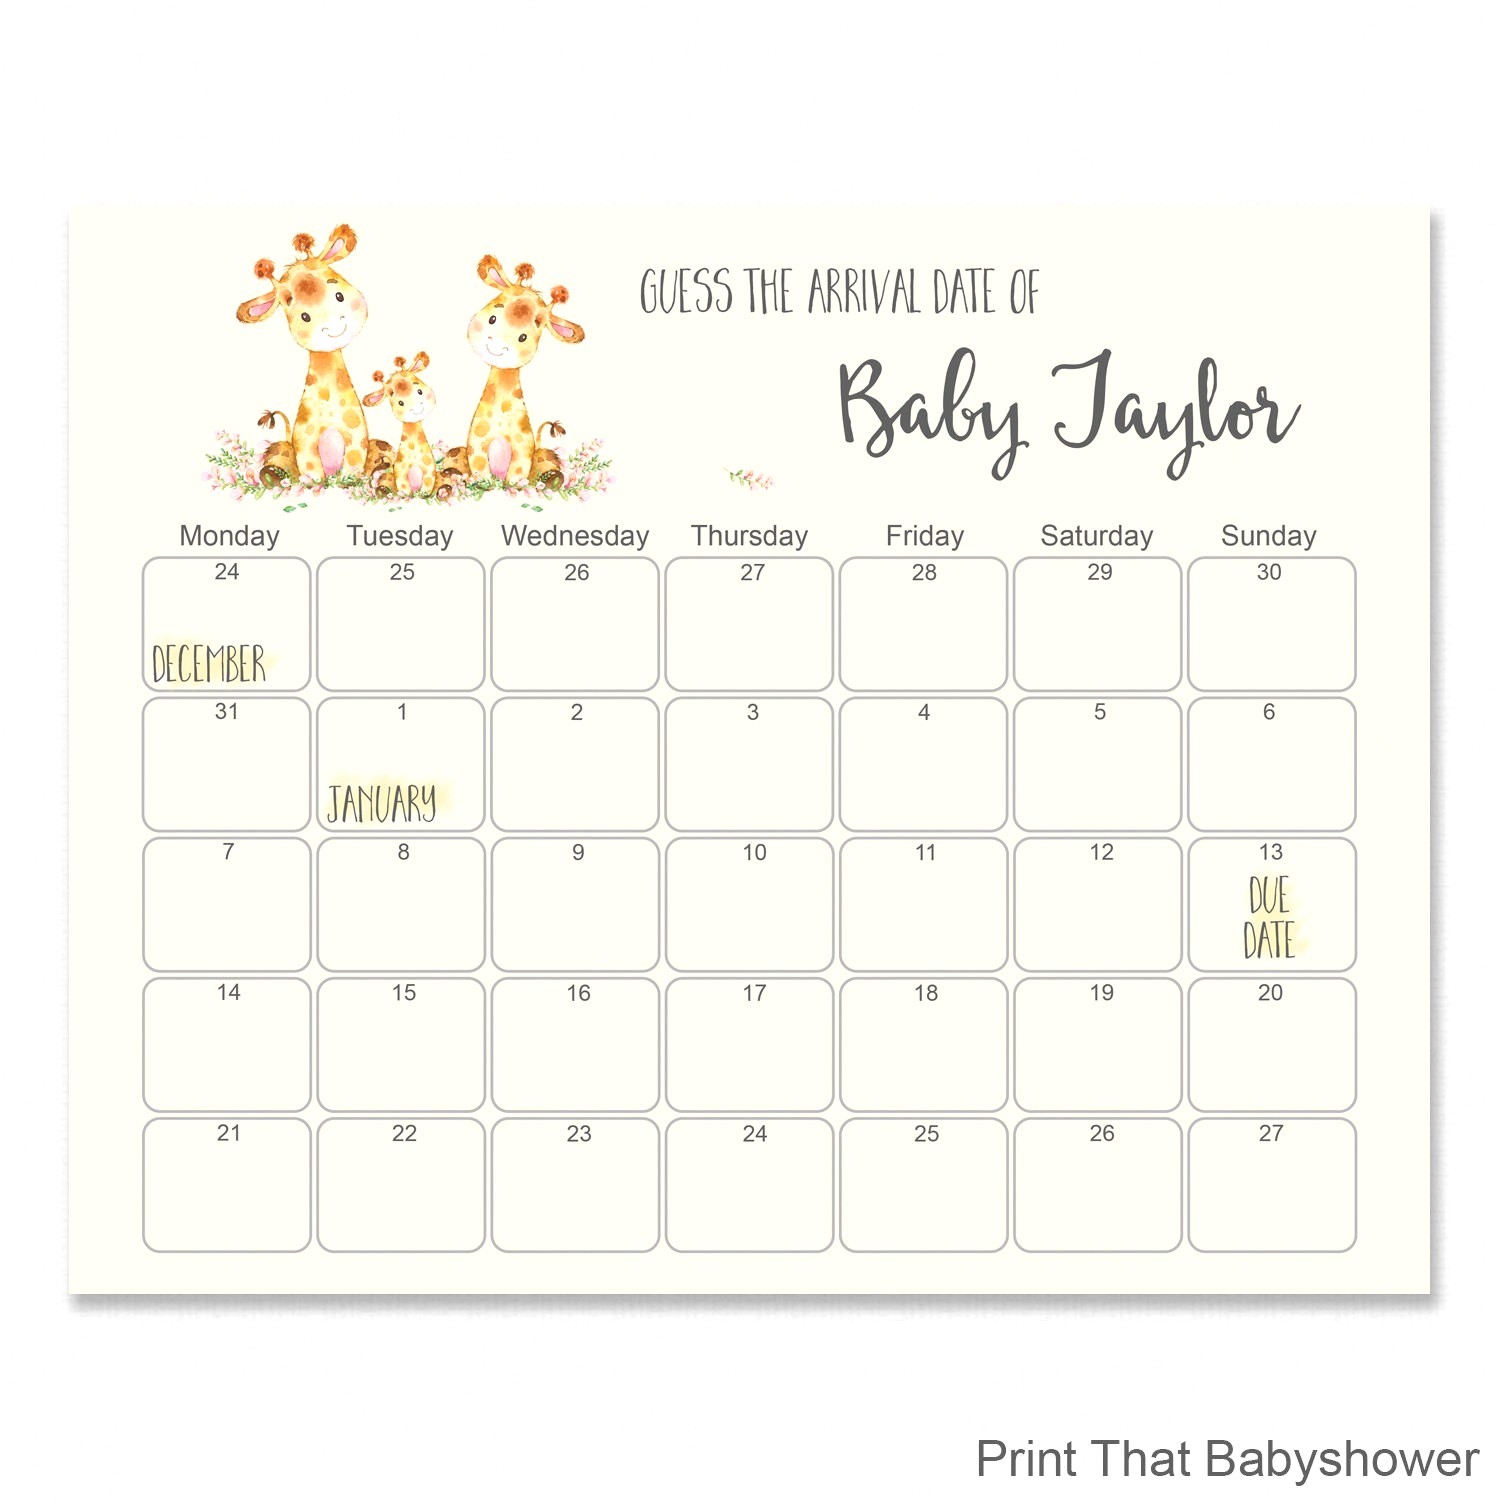 Free Printable Baby Shower Due Date Calendar Guess The